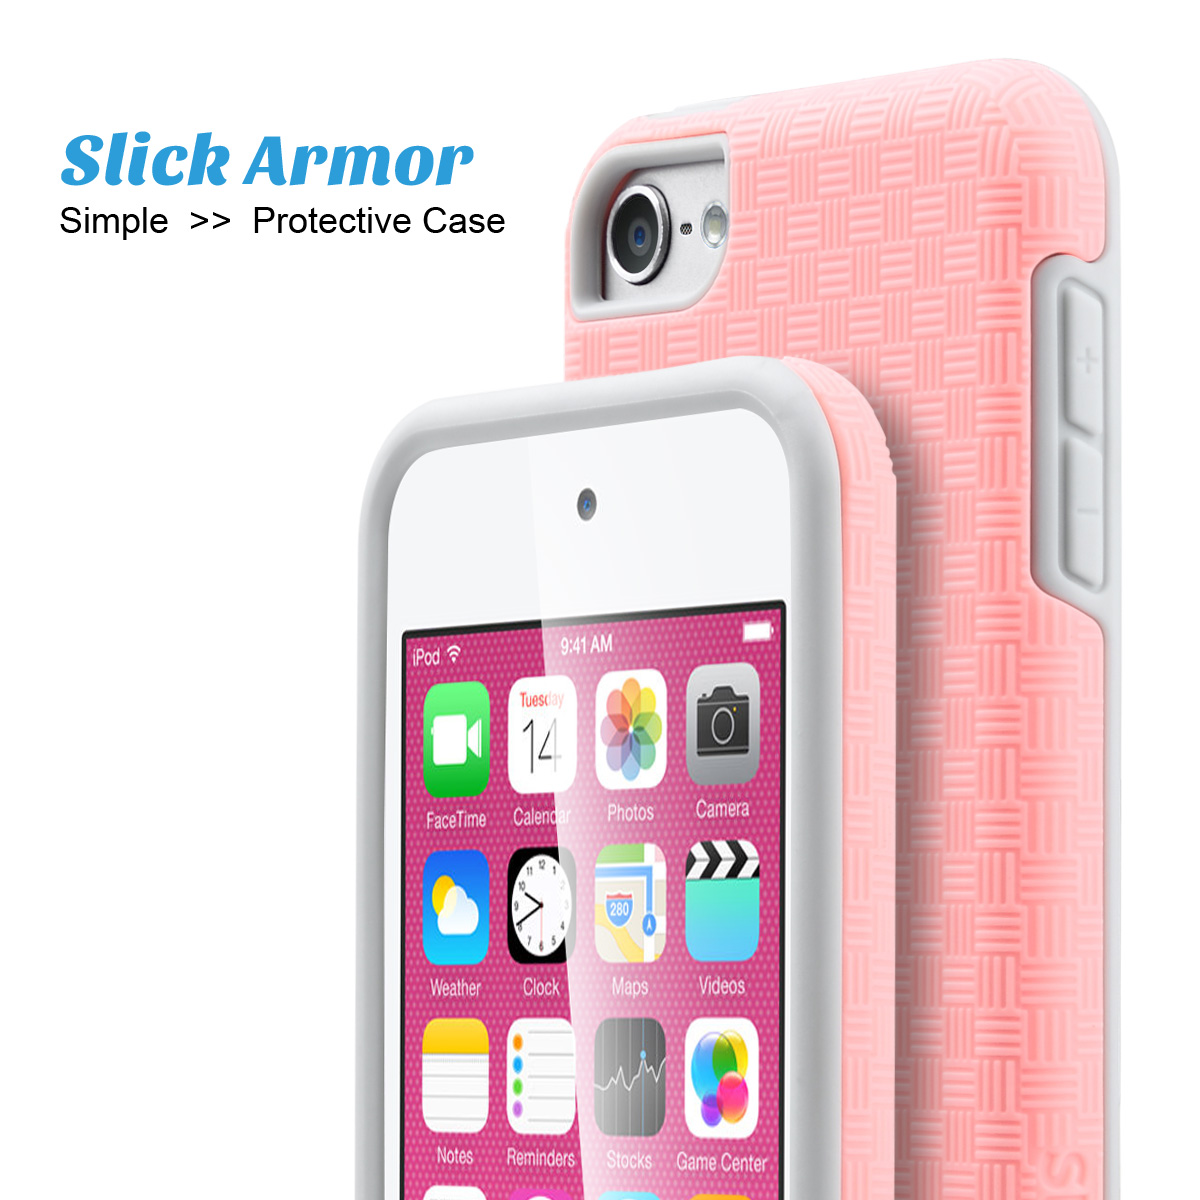 hot sale online e9156 066e4 US $11.99 |For Apple iPod Touch 6 & iPod Touch 5 Case, ULAK [SLICK ARMOR]  Slim Protection Case for Apple iPod Touch 6 5th Generation on  Aliexpress.com ...